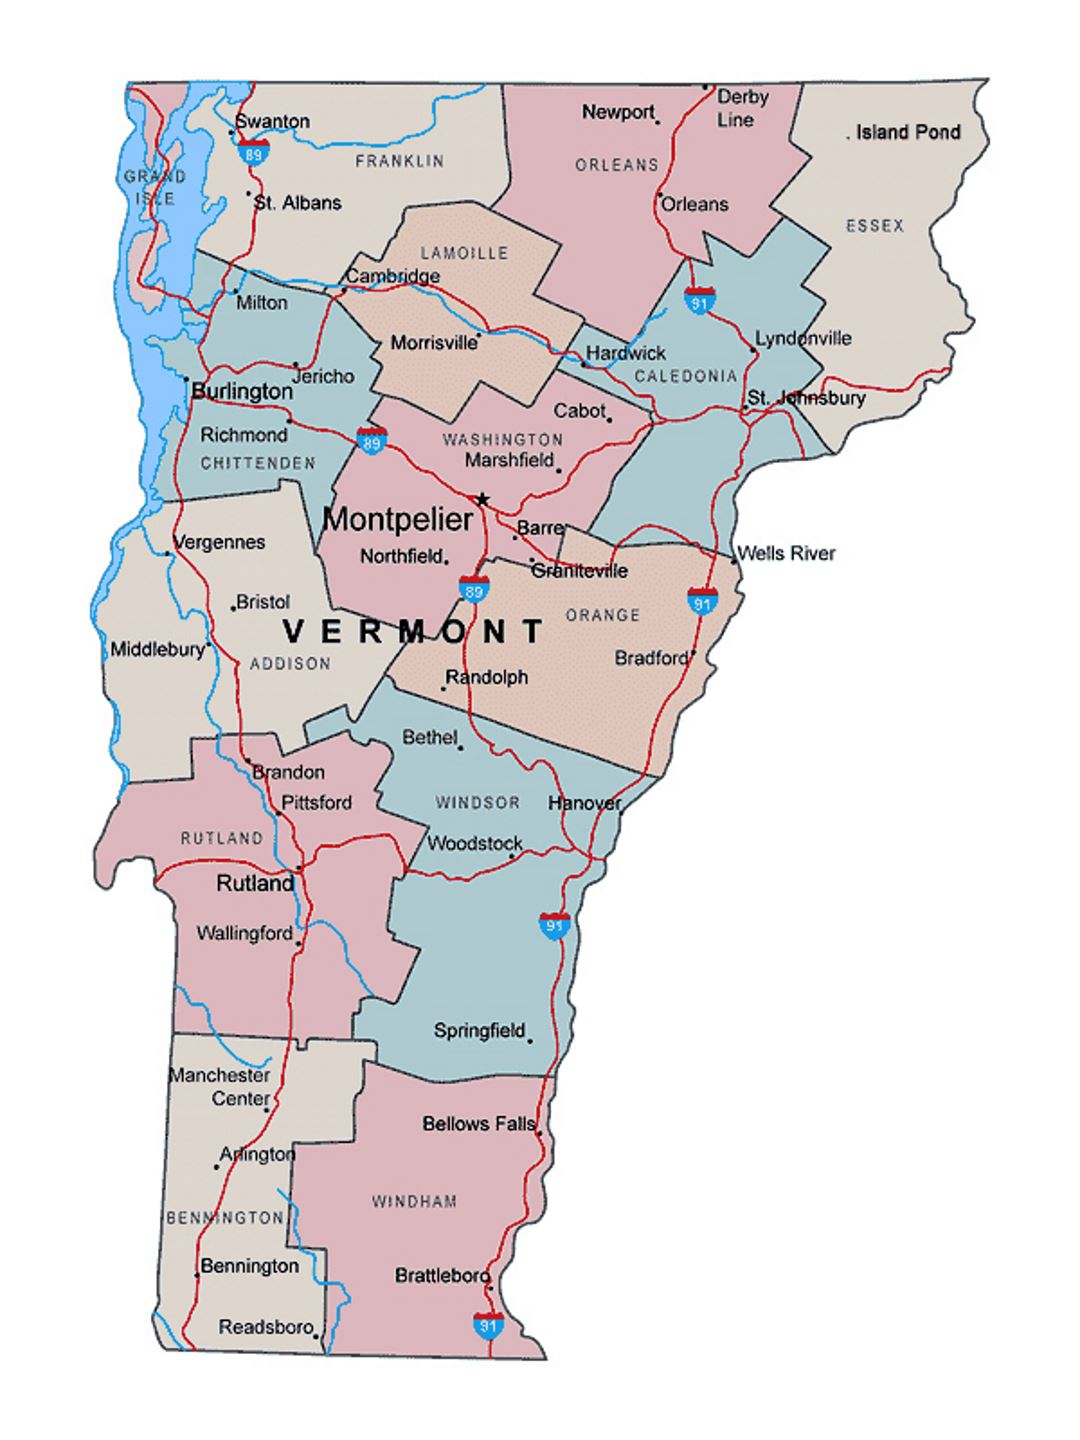 Map Of America Vermont.Administrative Map Of Vermont State With Major Cities Vermont